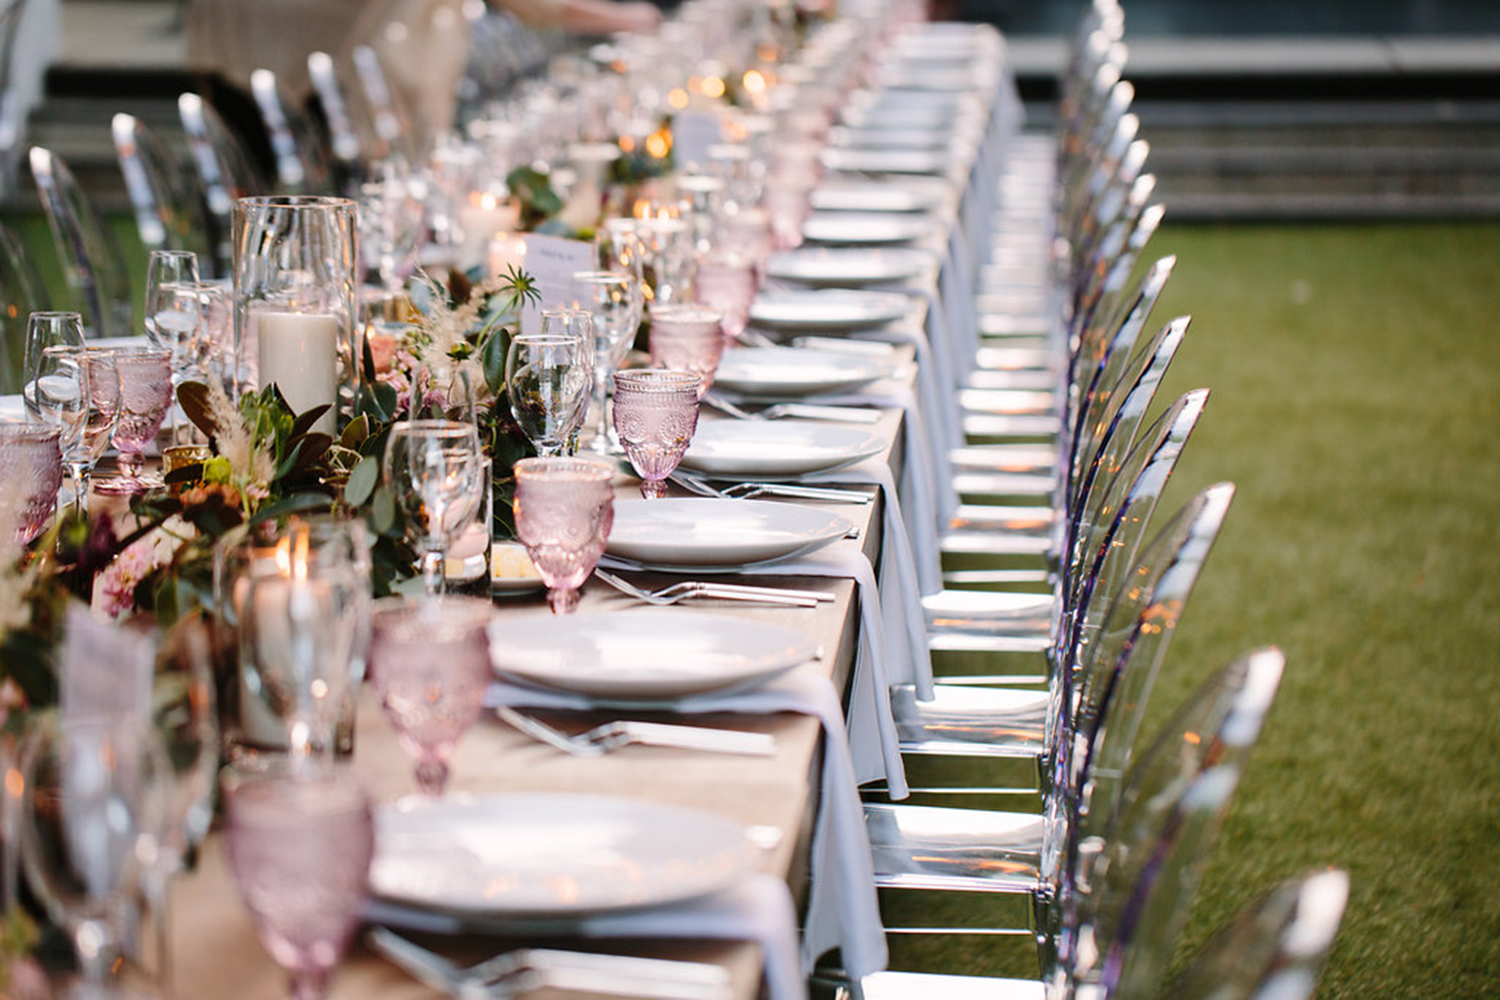 Blush and acrylic table setting